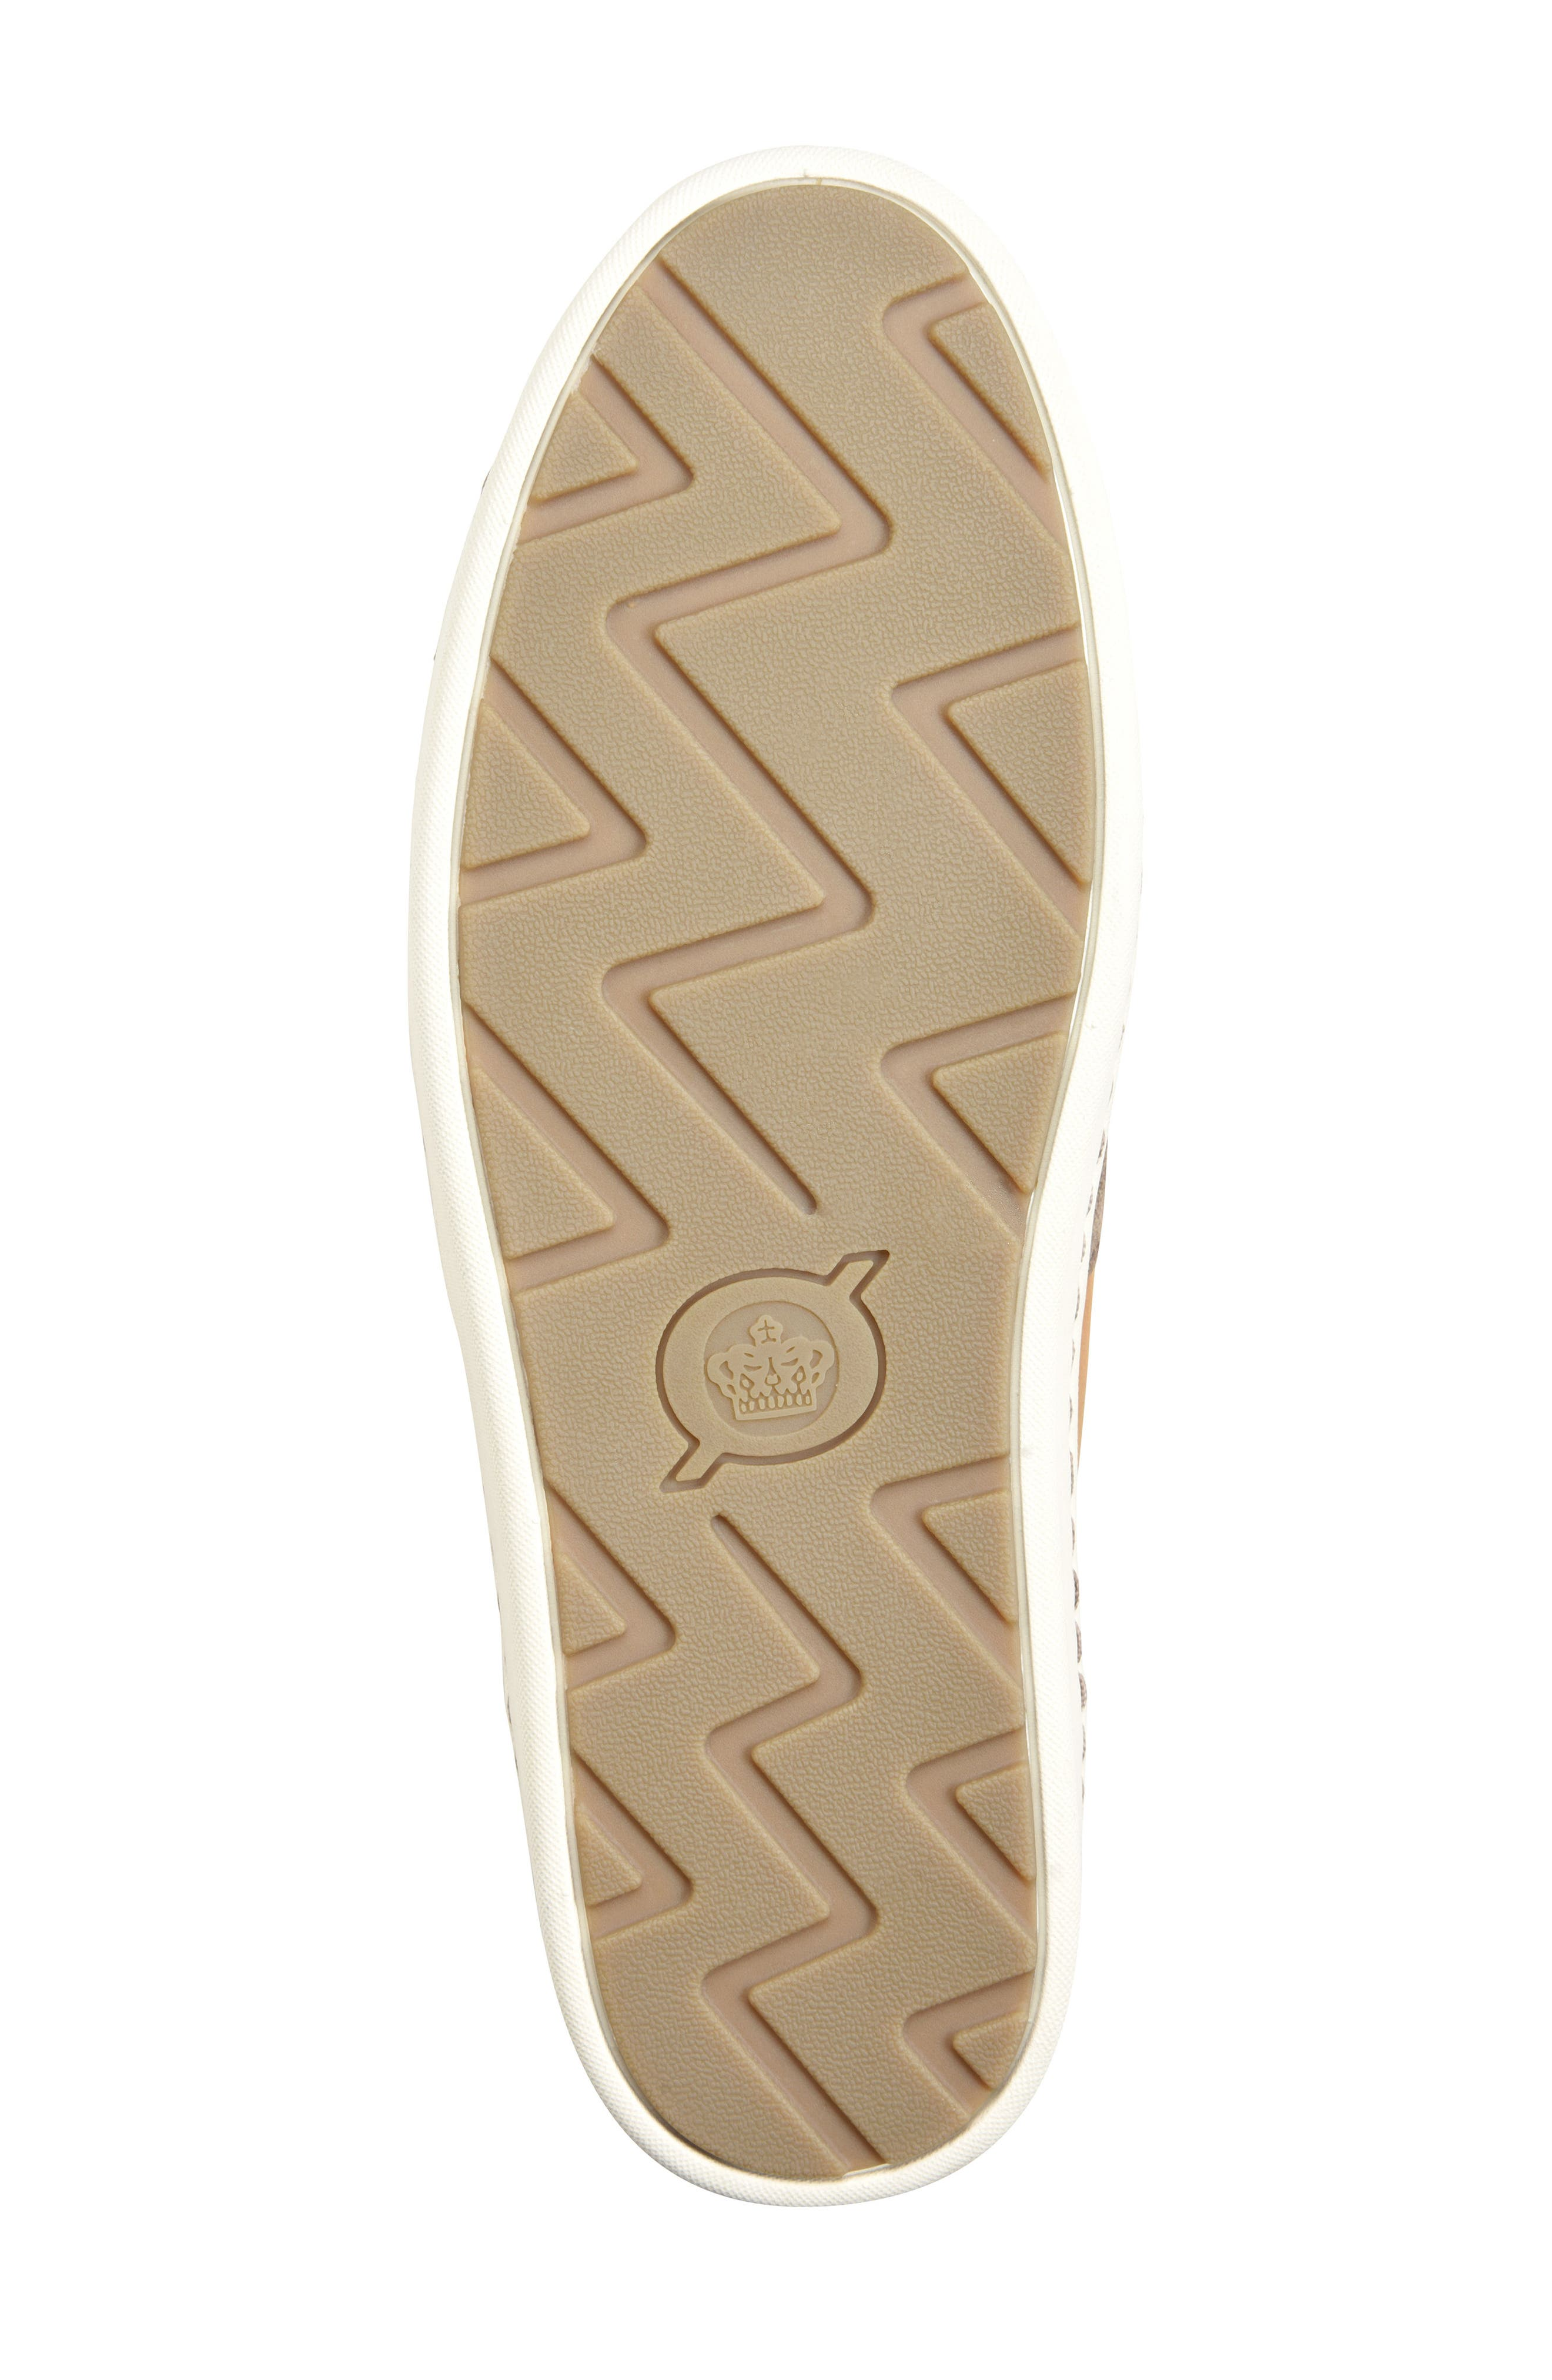 Keystone Low Top Sneaker,                             Alternate thumbnail 6, color,                             Taupe Leather